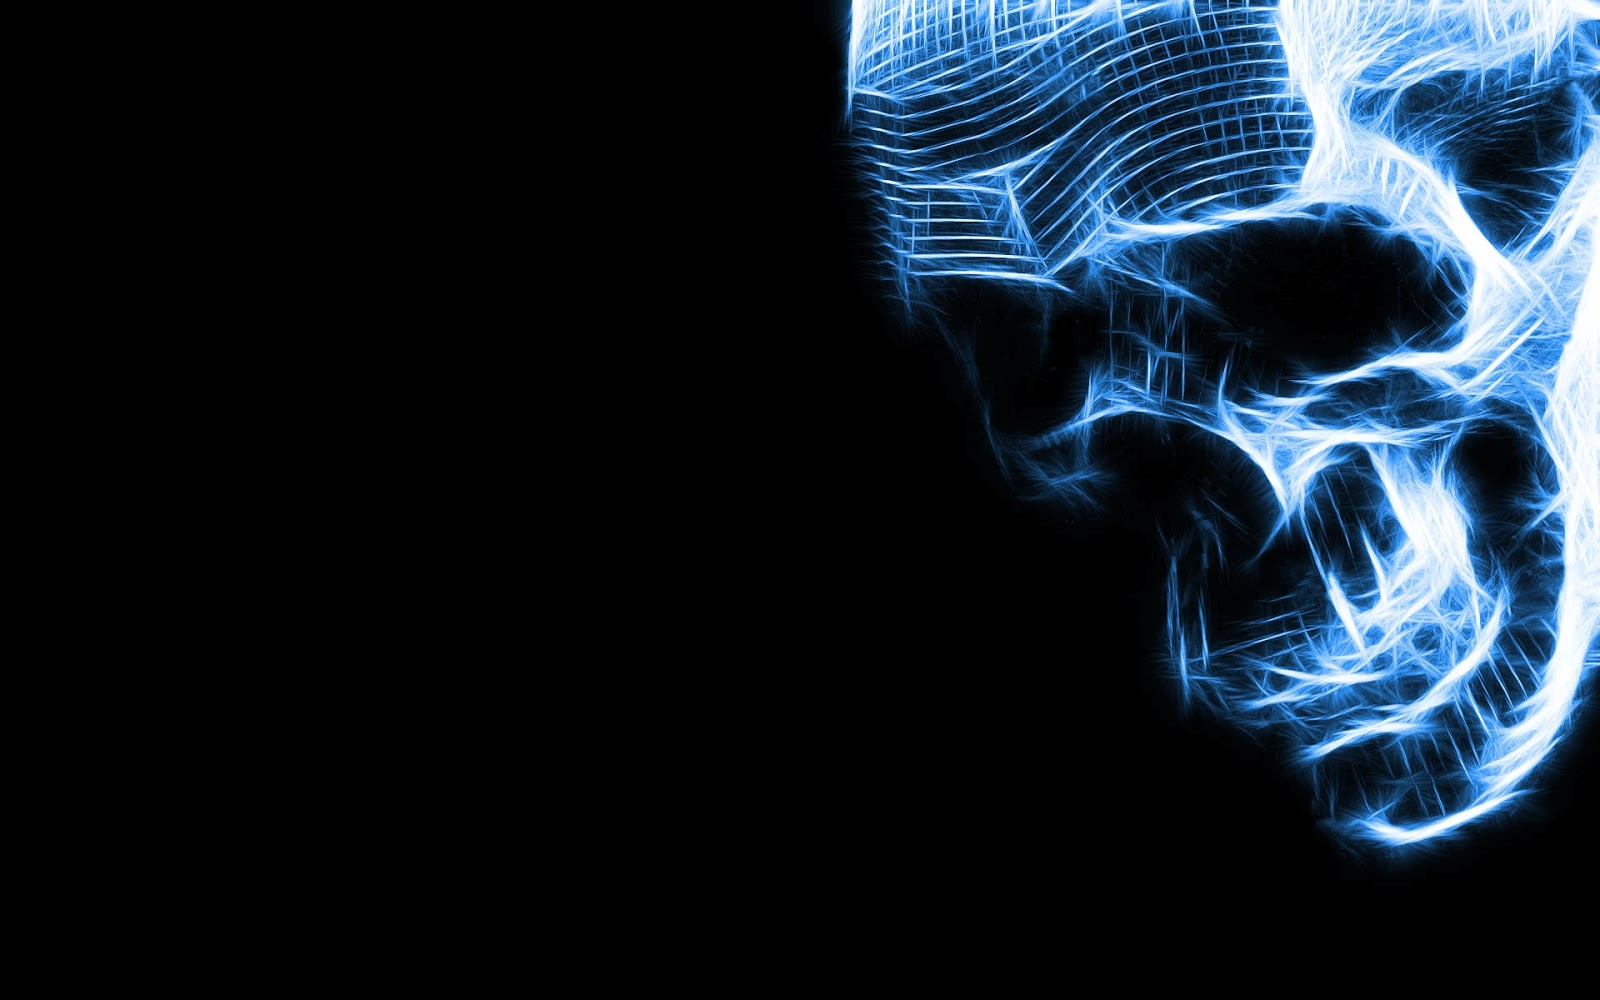 Neon Wallpapers for Android - Neon Skull